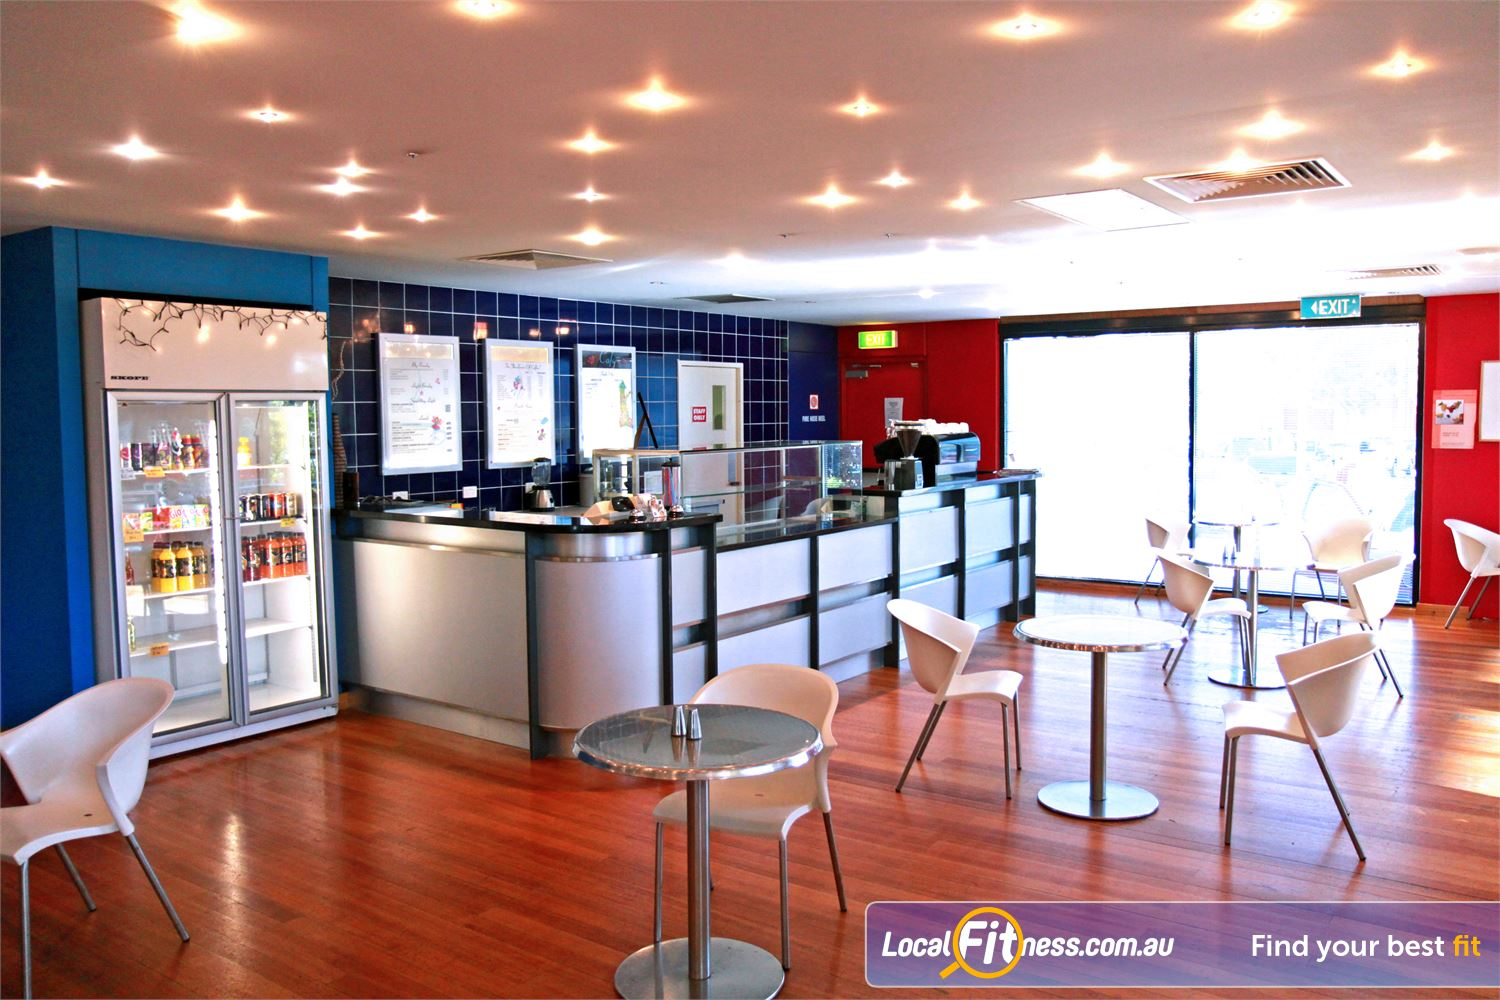 Goodlife Health Clubs Cannington On-site Cafe with radiant natural light and plenty of seating.